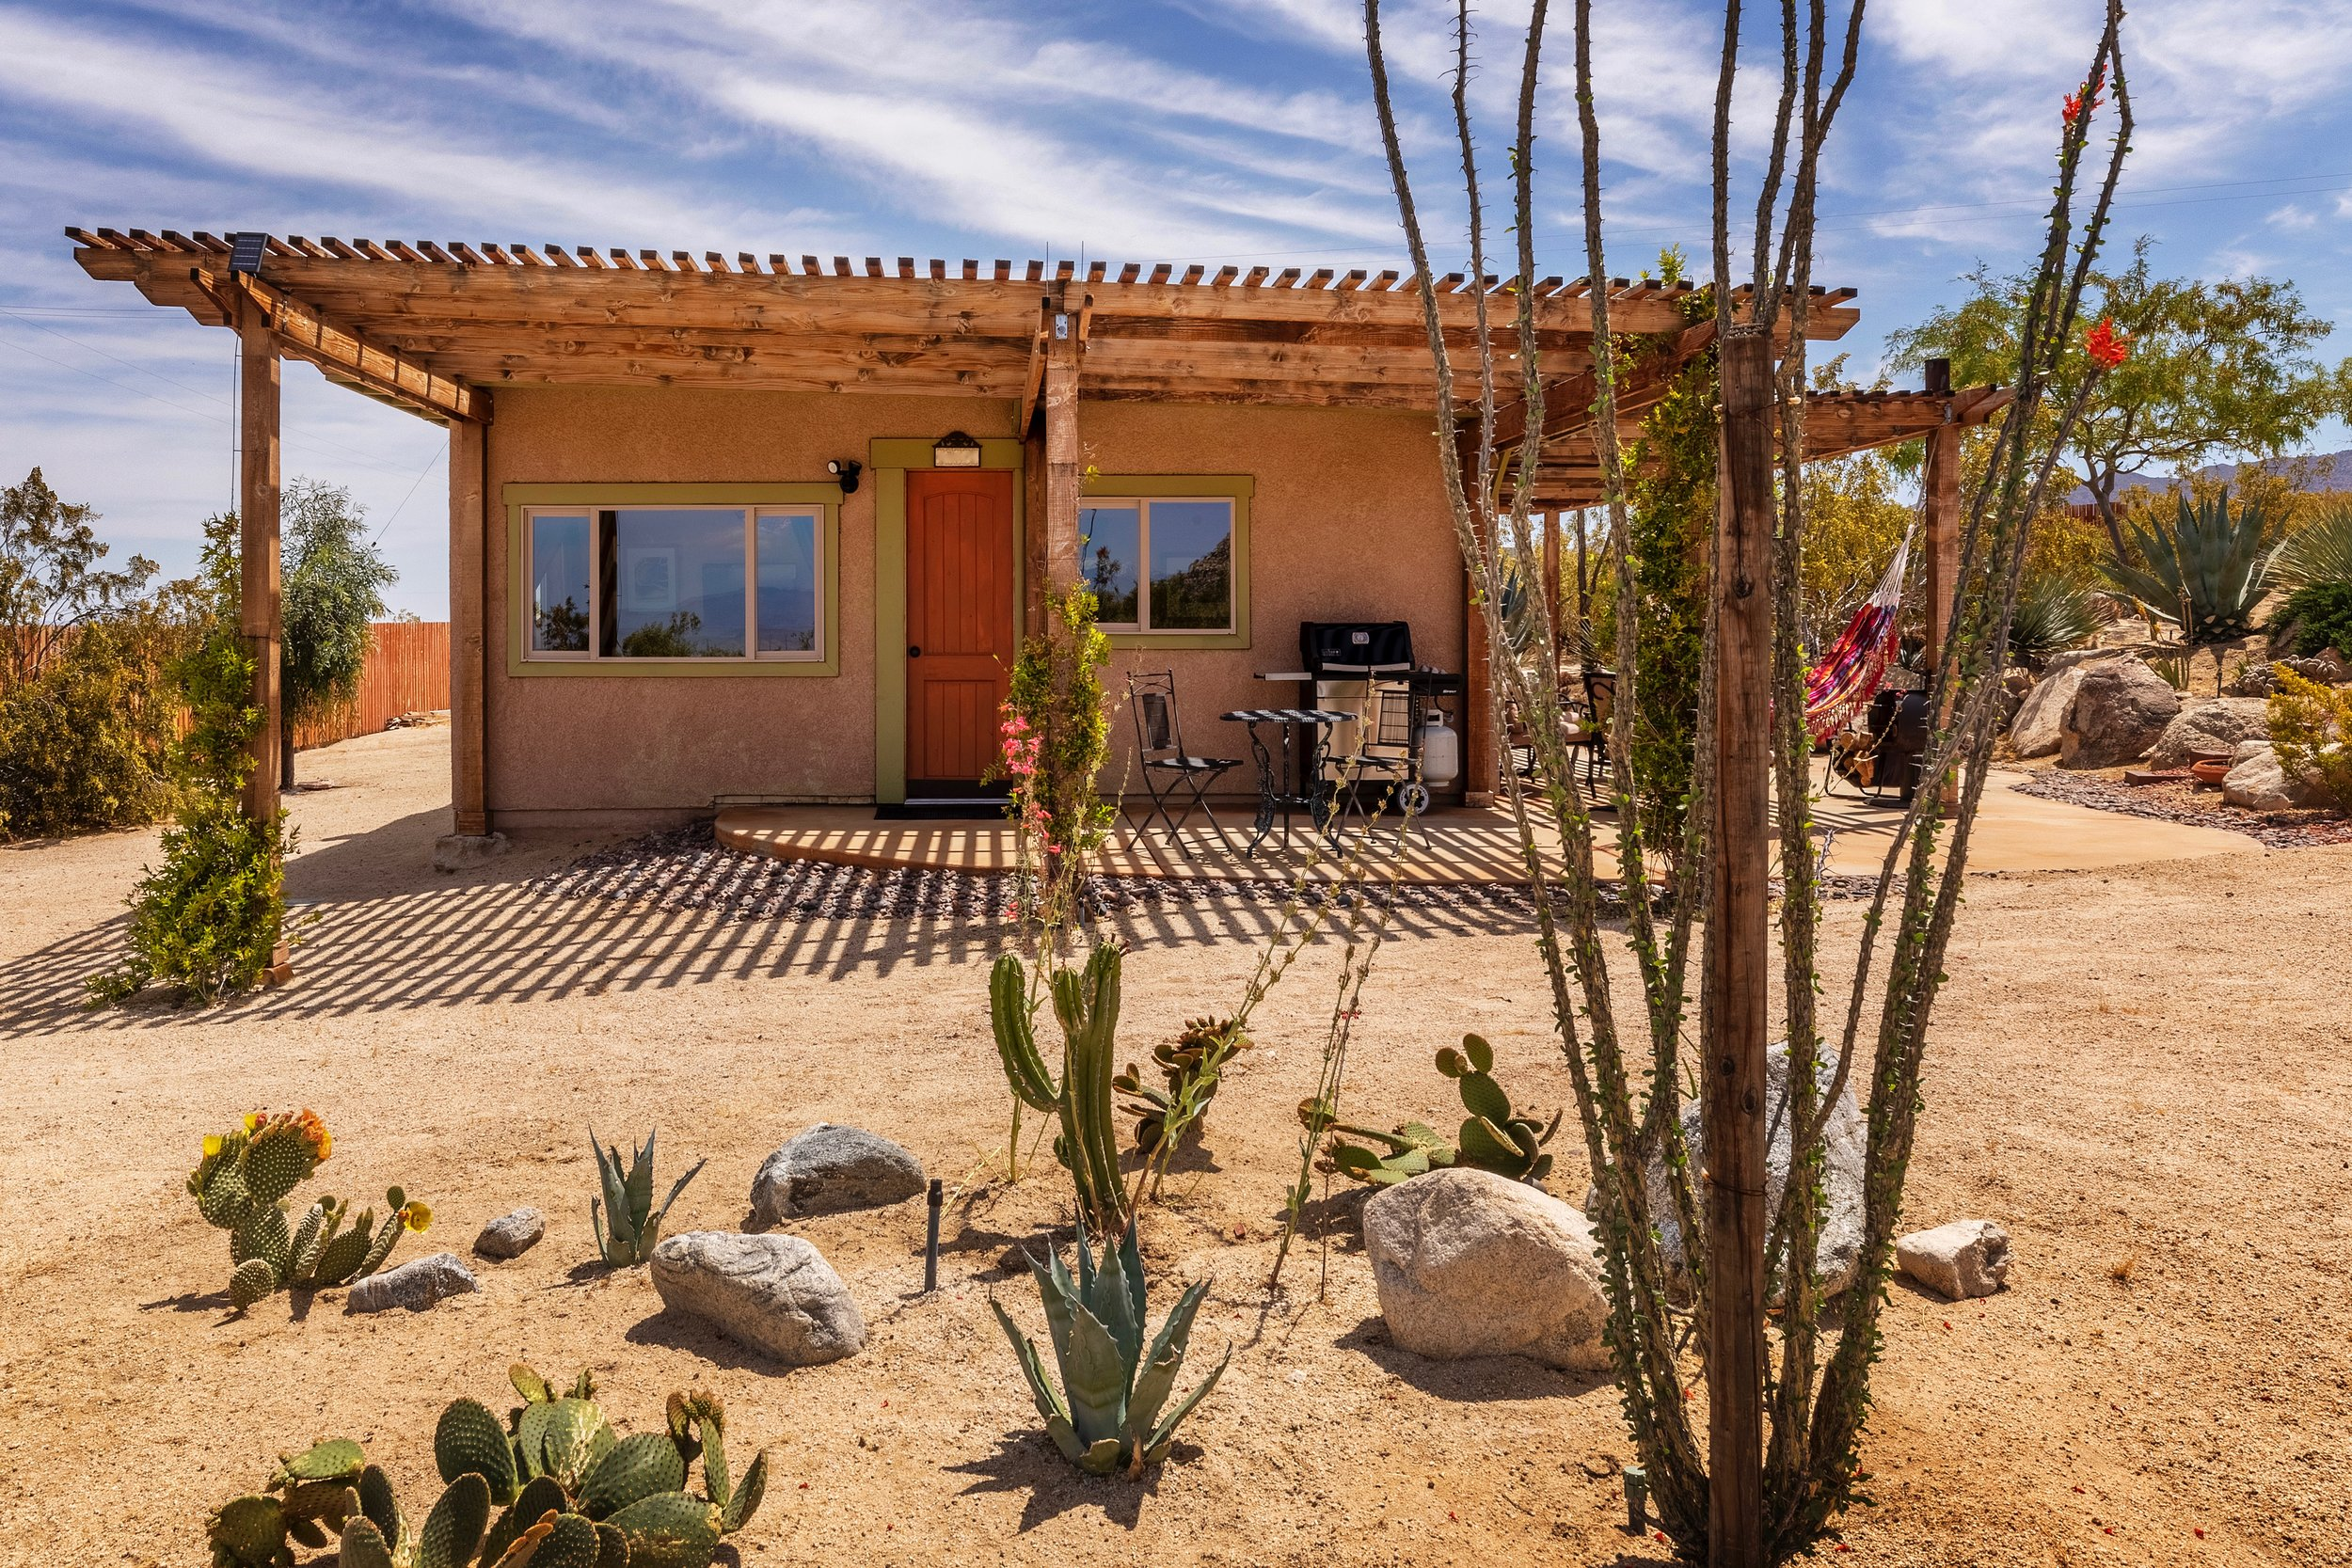 sullivan cabin furnished vacation rental - joshua tree, ca OFFERED BY RENT29.COM